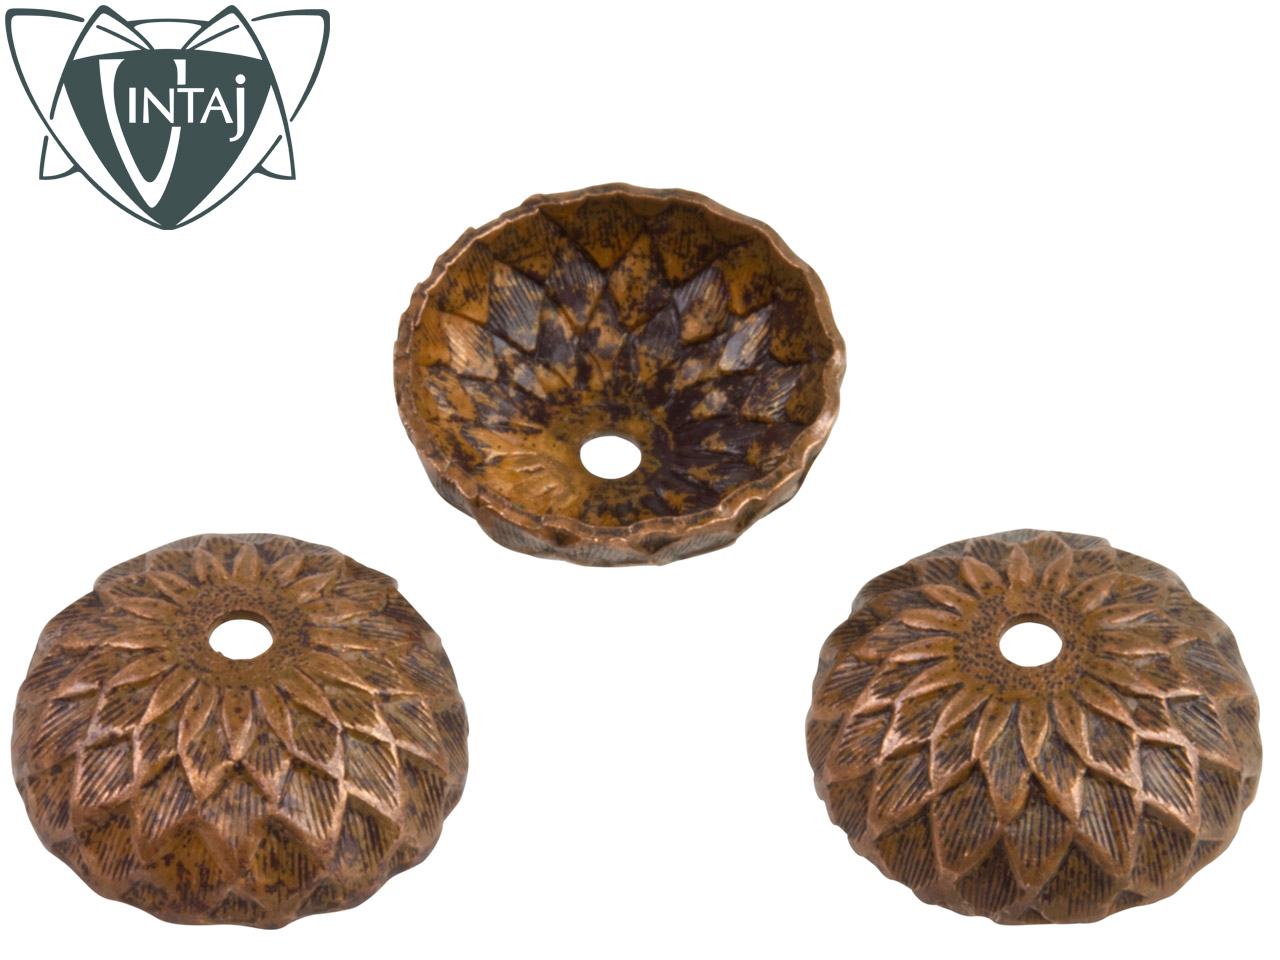 Vintaj Artisan Copper Acorn Bead Cap 12.5mm Pack of 3